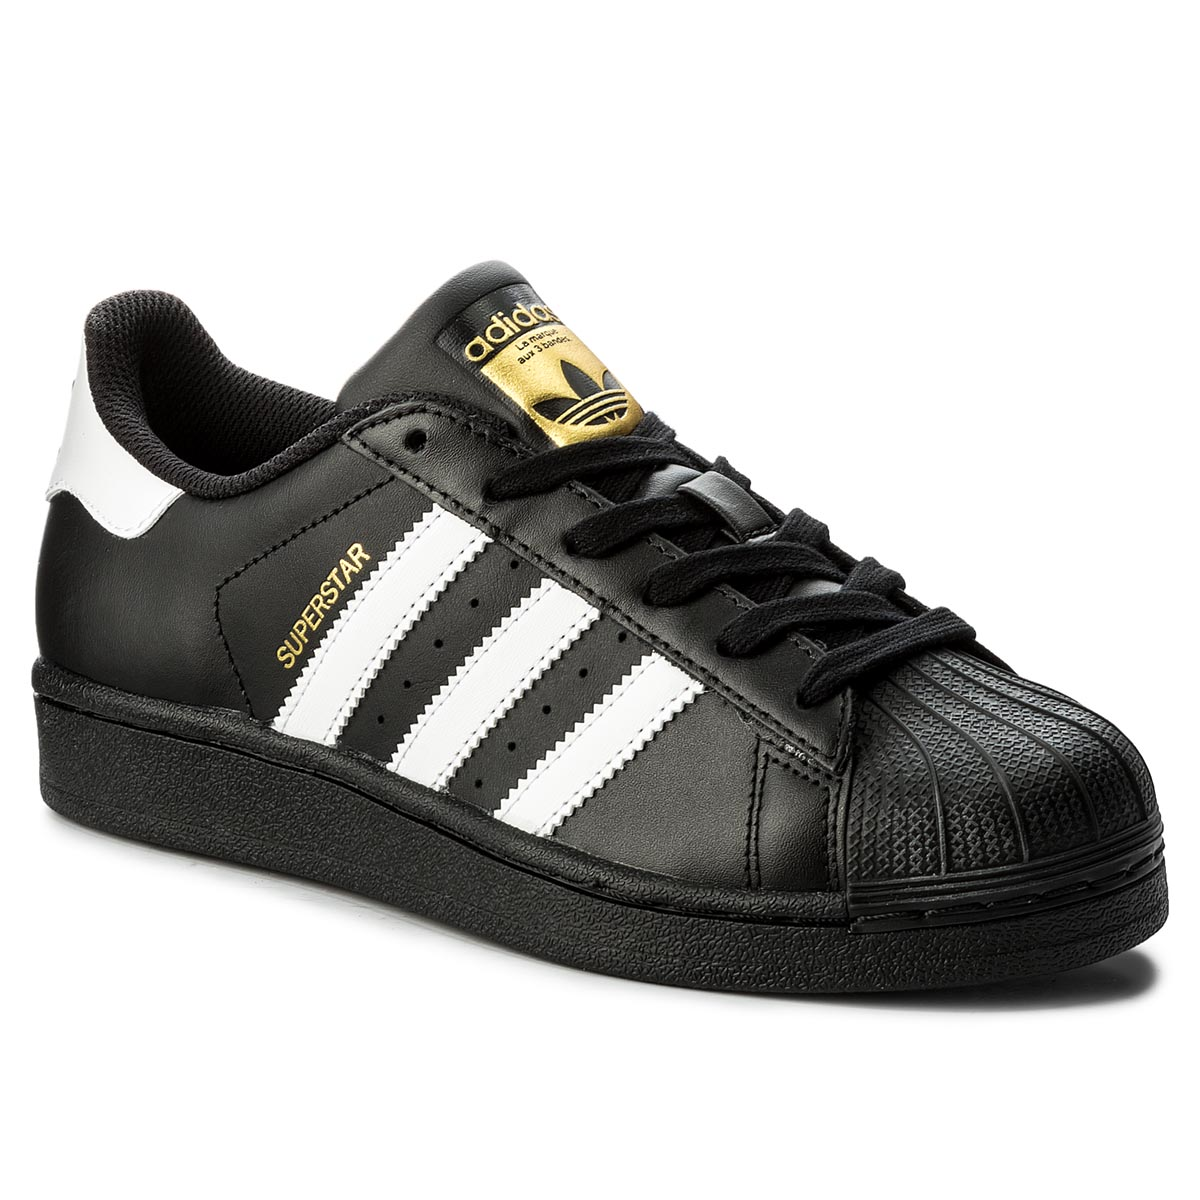 C77154 J Sneakers Shoes Ftwwhtcblackftwwht Adidas Superstar RLq5j34A